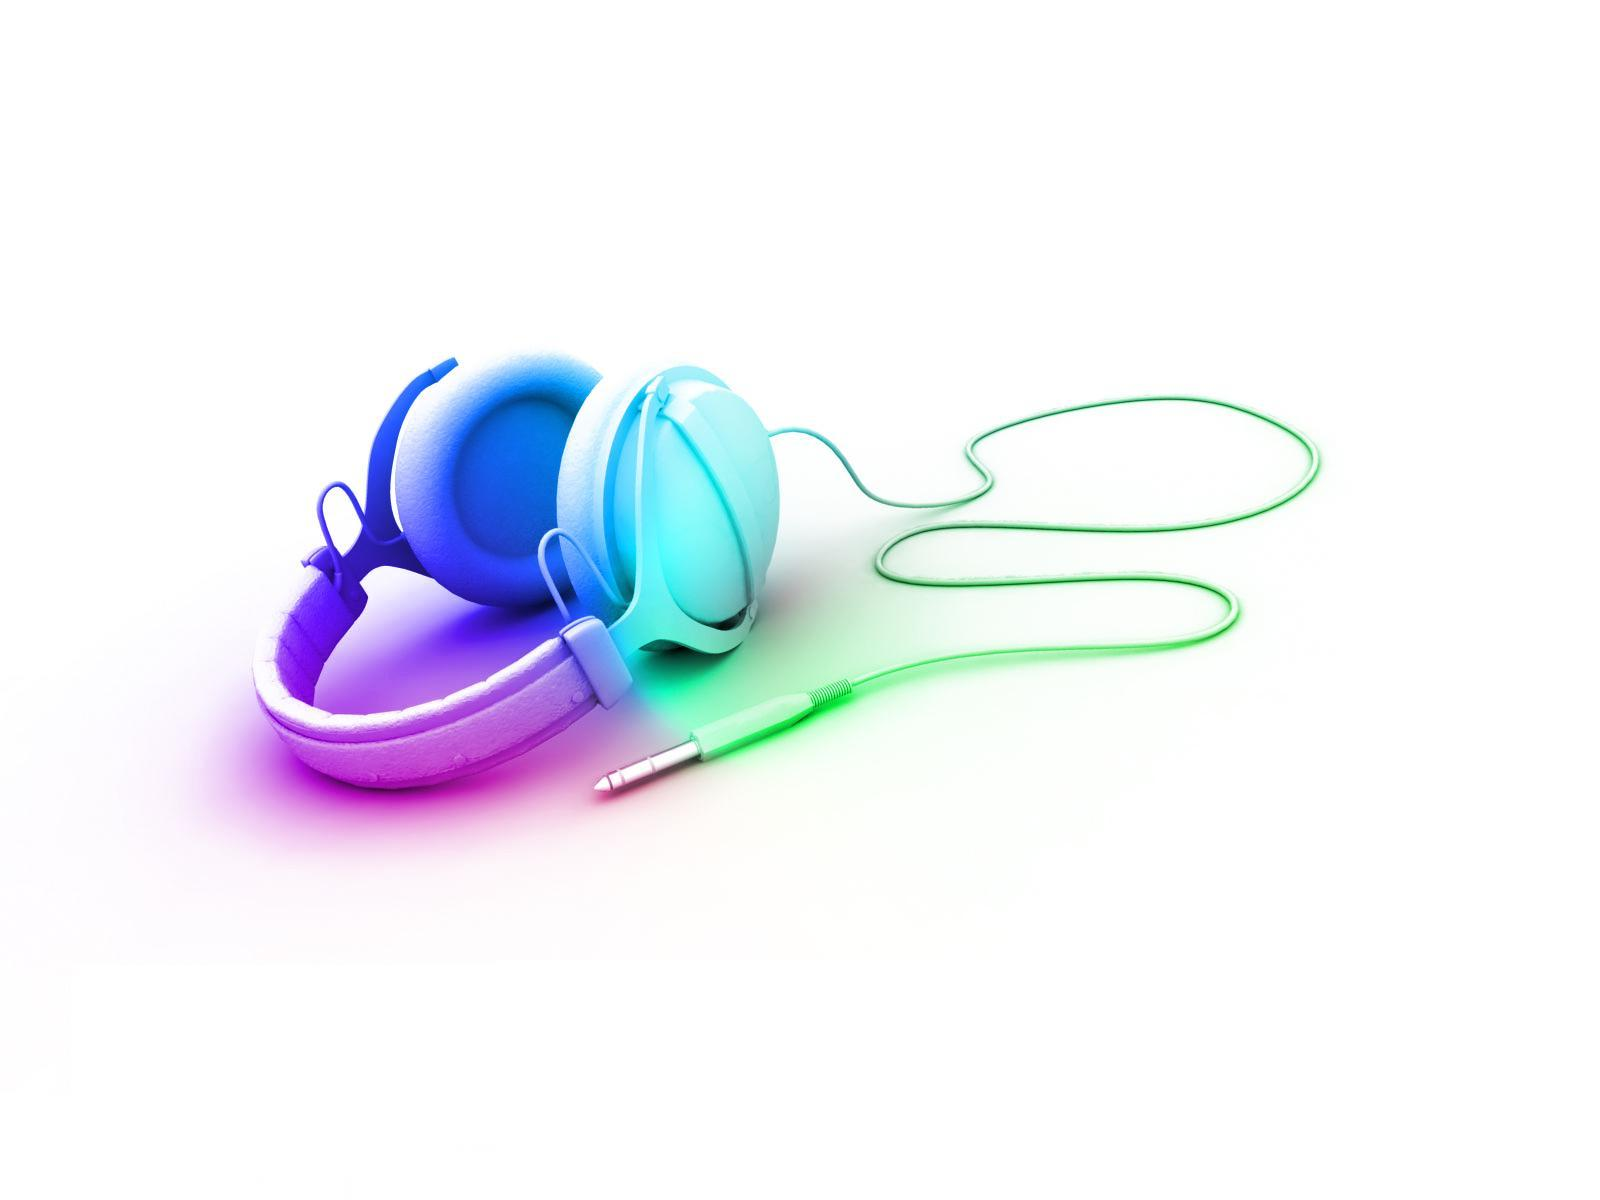 backgrounds wallpapers earbuds - photo #16